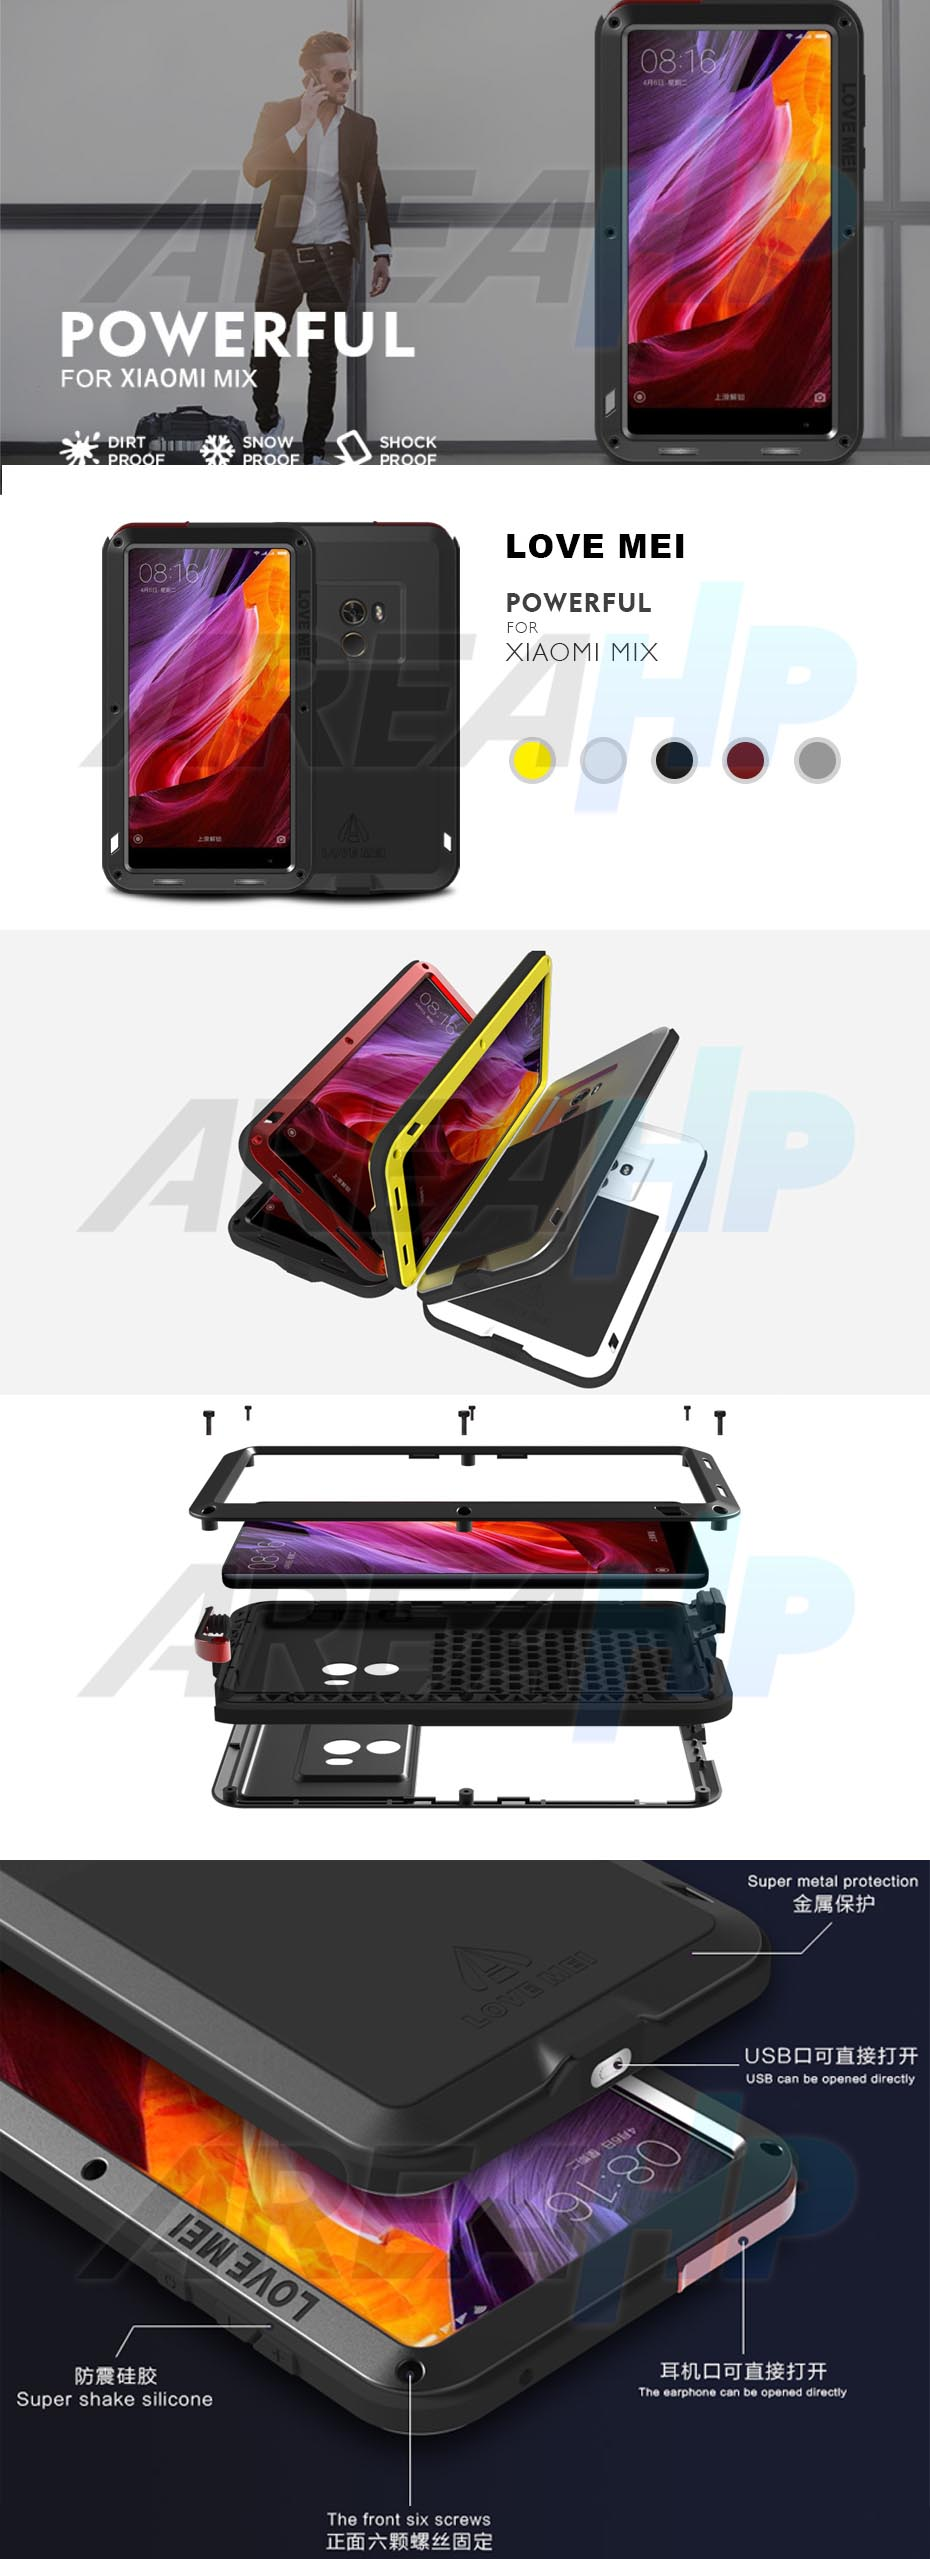 Love Mei Powerful Case for Xiao Mi Mix Overview